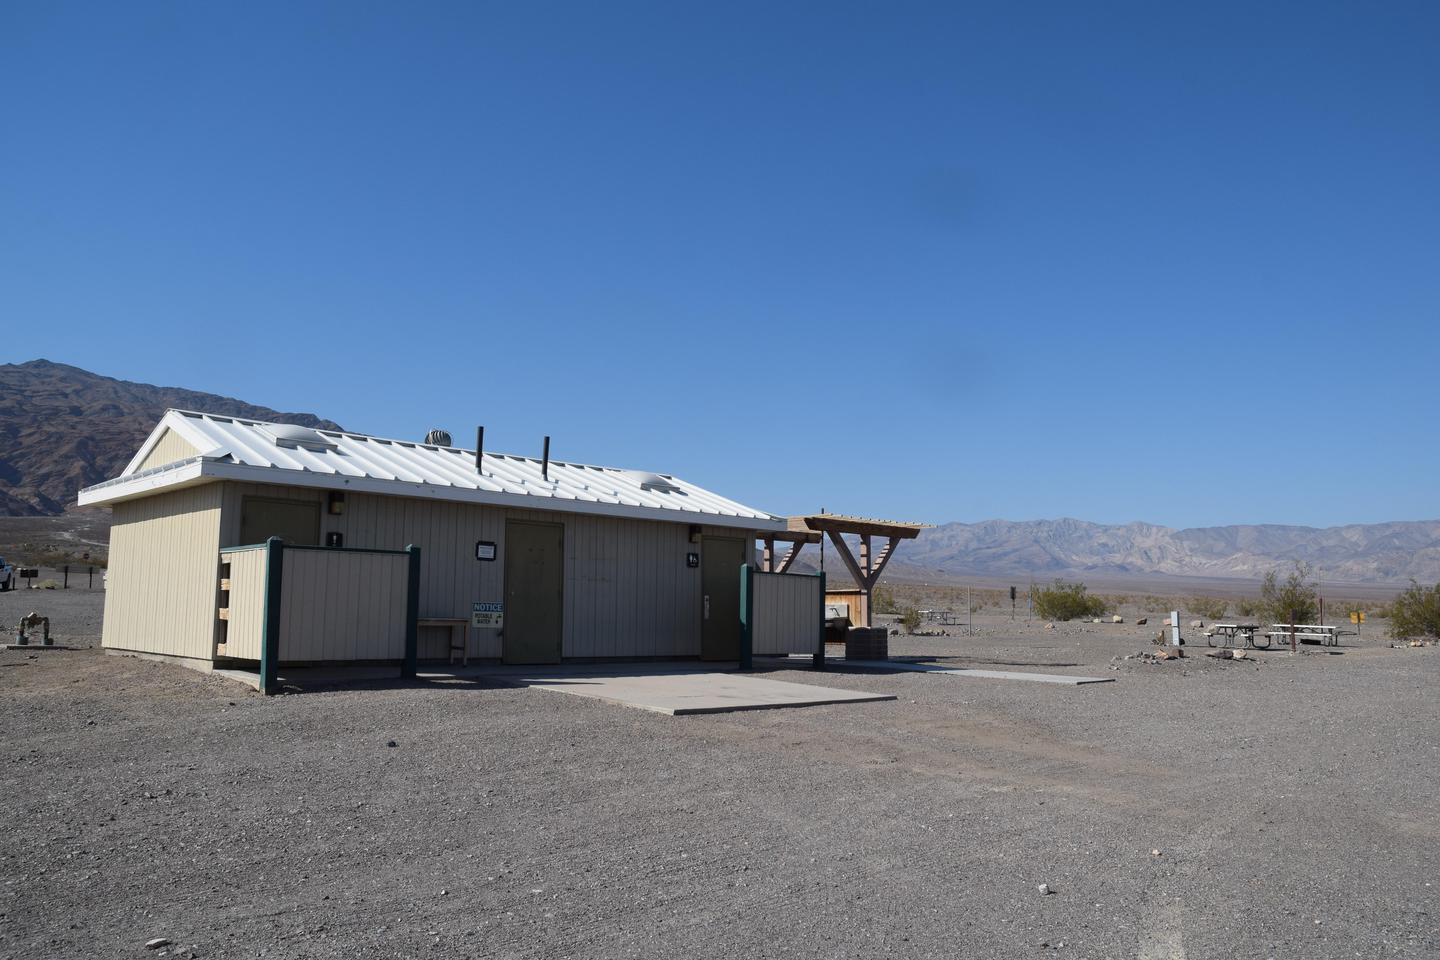 Stovepipe Wells Campground facilitiesBathroom facilities at Stovepipe Wells Campground.